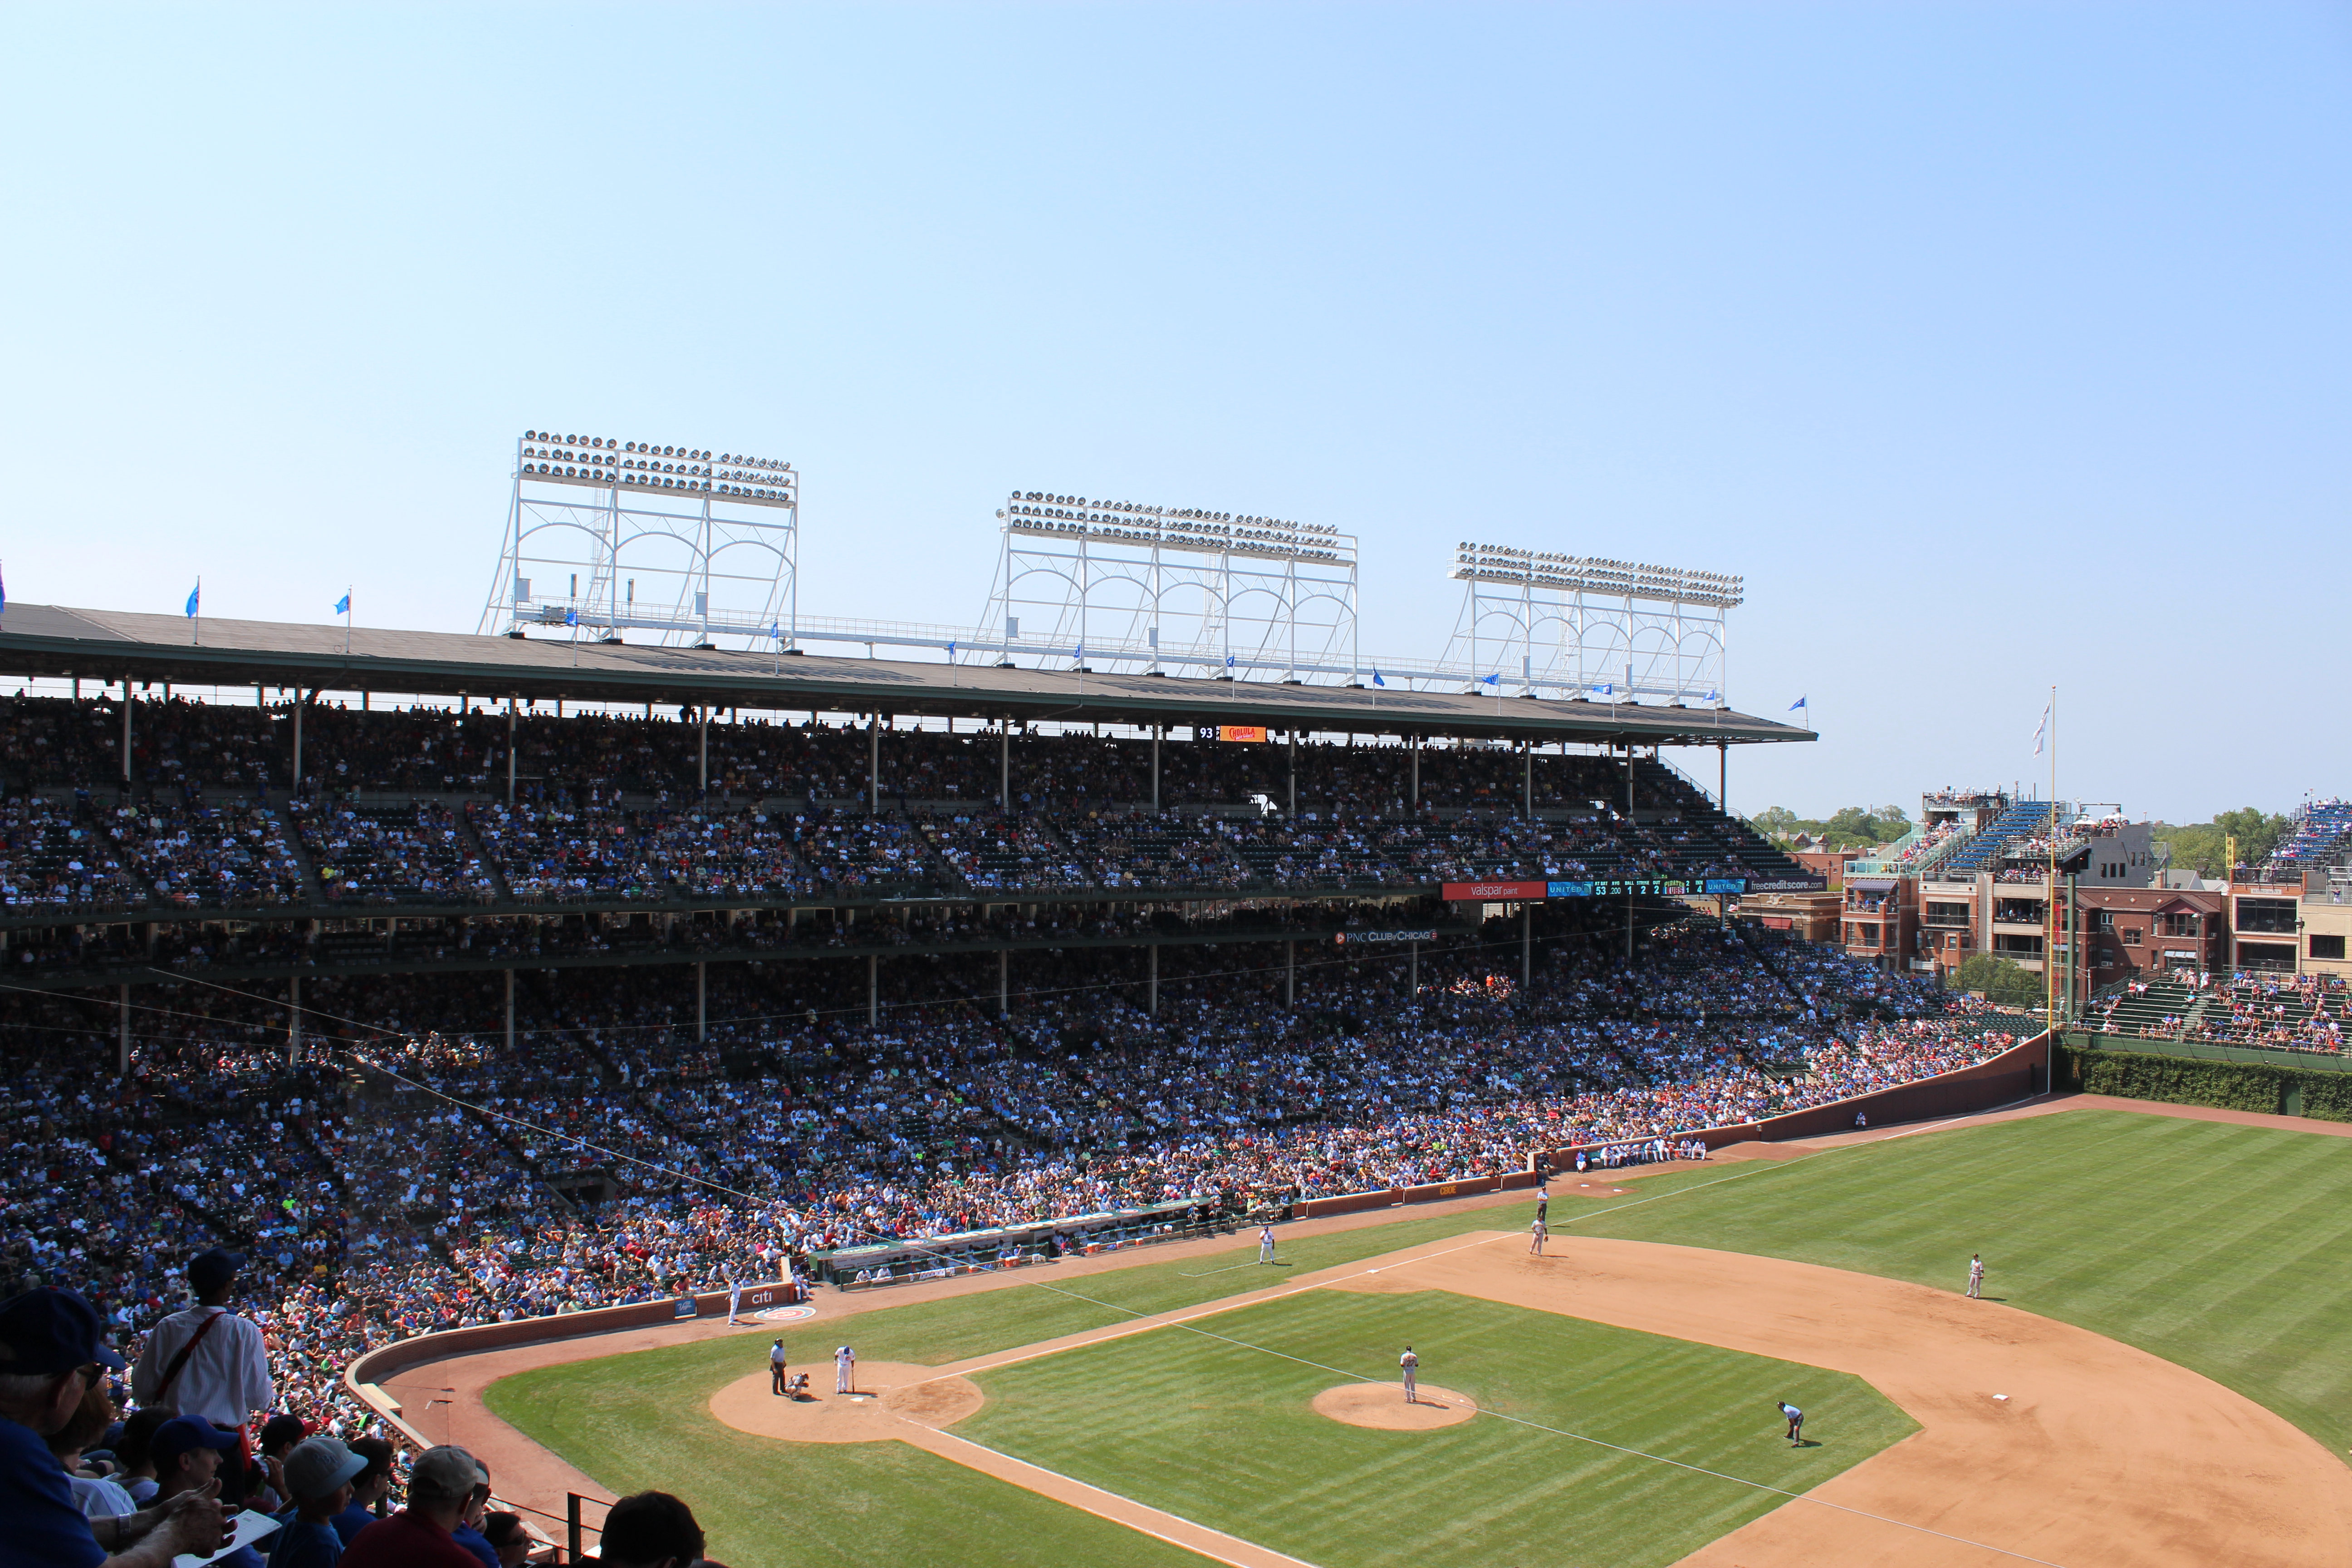 File:20120801 Wrigley Field with Ron Santo 10 flags on the